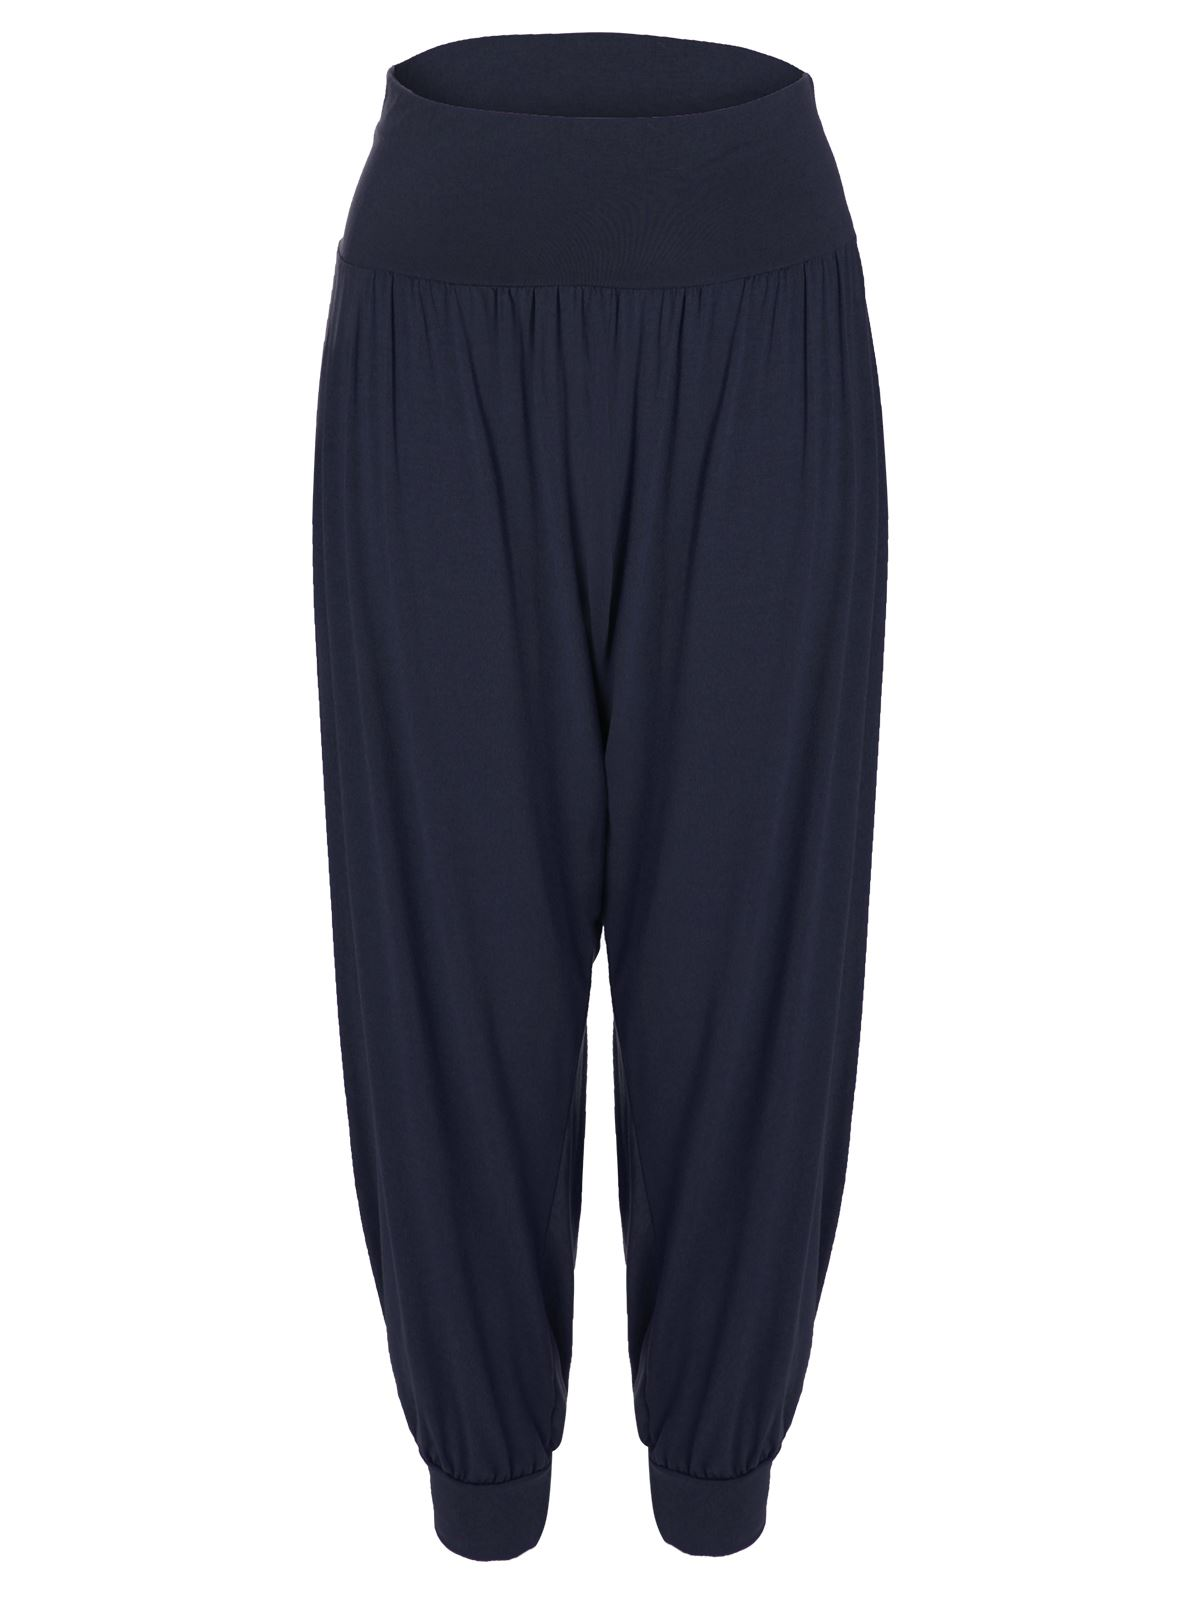 Women's Harem Pants Let loose and relax! Give legroom a whole new spin with women's harem pants, genie pants and baggy pants that pull off loose silhouettes effortlessly but with comfort from hip to hem.